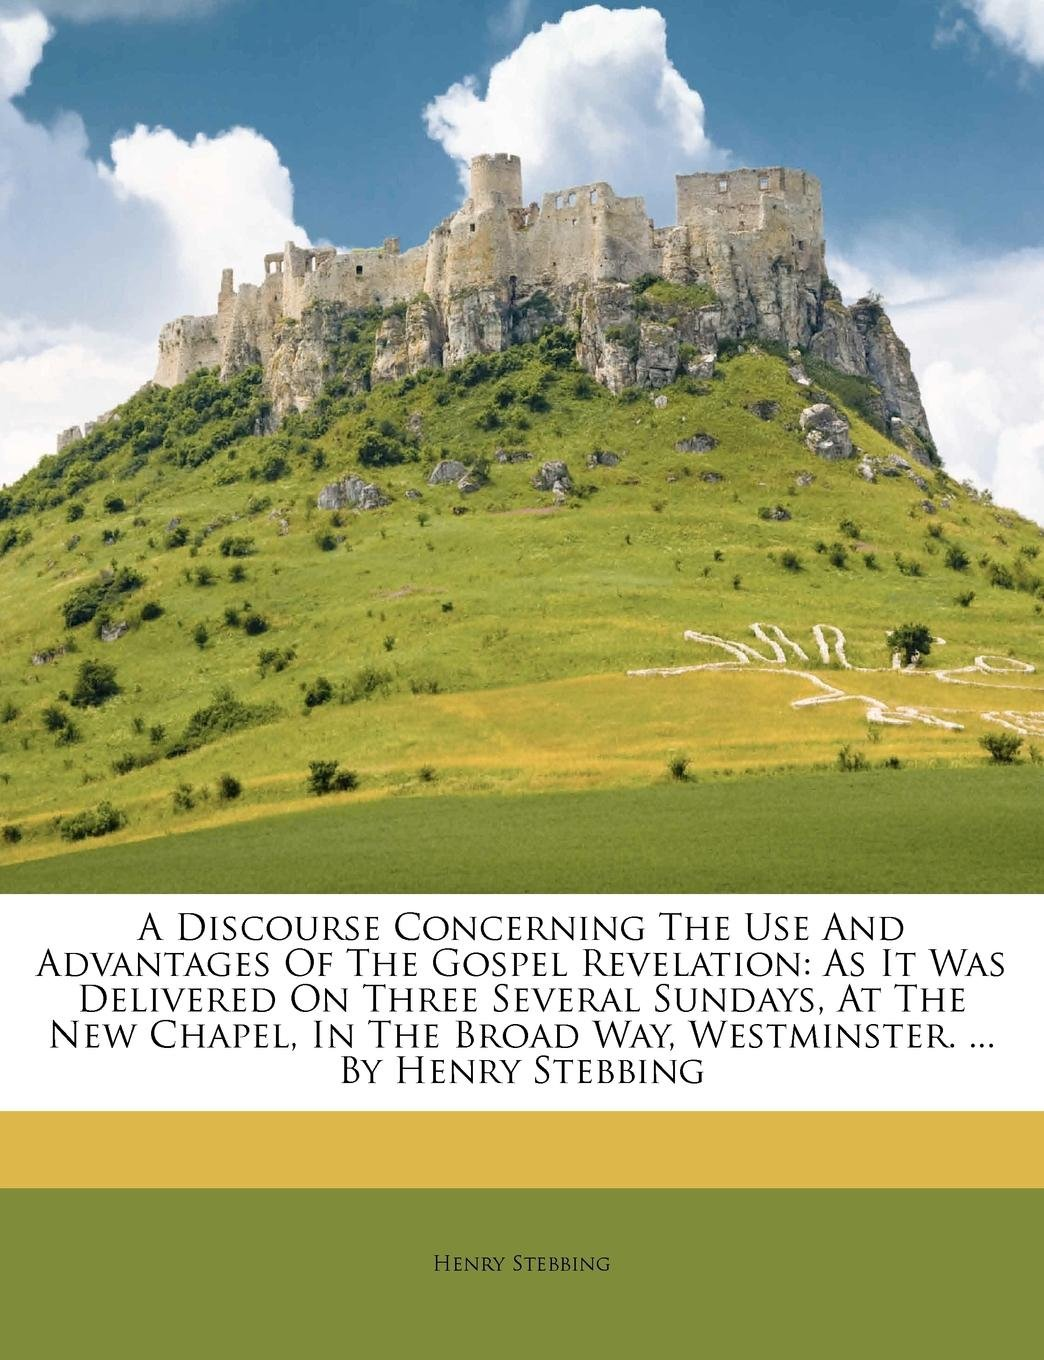 A Discourse Concerning The Use And Advantages Of The Gospel Revelation: As It Was Delivered On Three Several Sundays, At The New Chapel, In The Broad Way, Westminster. ... By Henry Stebbing pdf epub